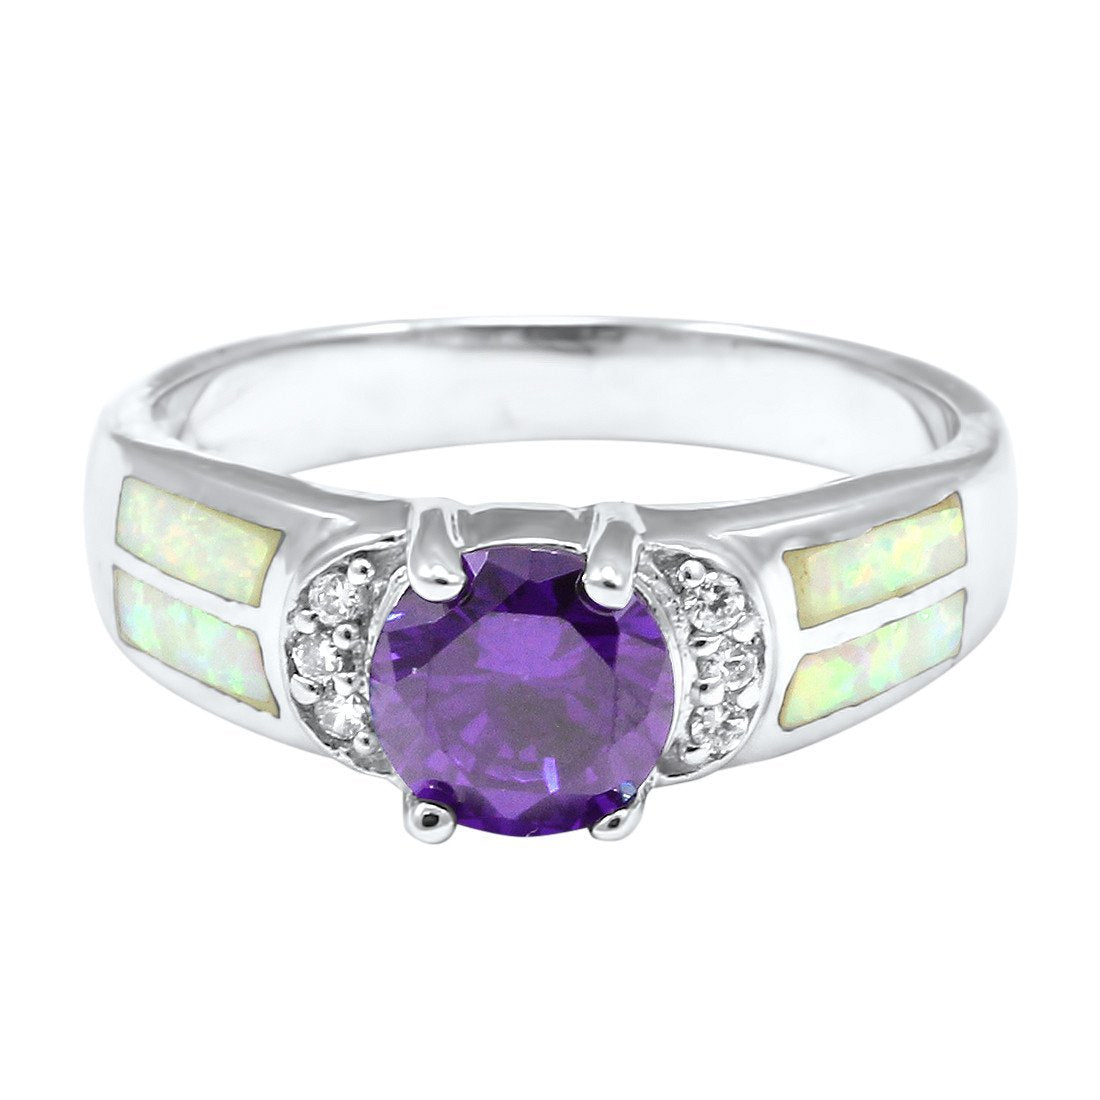 Fashion Ring Round Simulated Colored Cubic Zirconia Lab Created White Opal Accent 925 Sterling Silver Choose Color